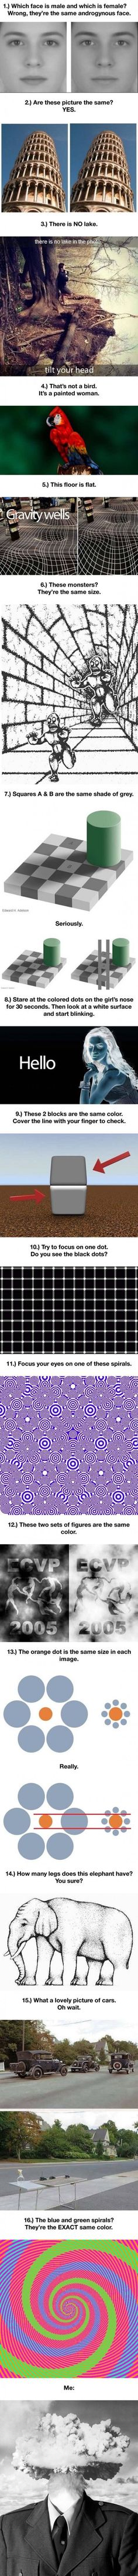 your mind with these optical illusions! Melt your mind with these optical illusions!<< some for me are simply indescribable. :OMelt your mind with these optical illusions!<< some for me are simply indescribable. Weird Facts, Fun Facts, Amazing Science Facts, Funny Mind Tricks, Cool Optical Illusions, Illusions Mind, Funny Illusions, Magic Illusions, Optical Illusions Brain Teasers